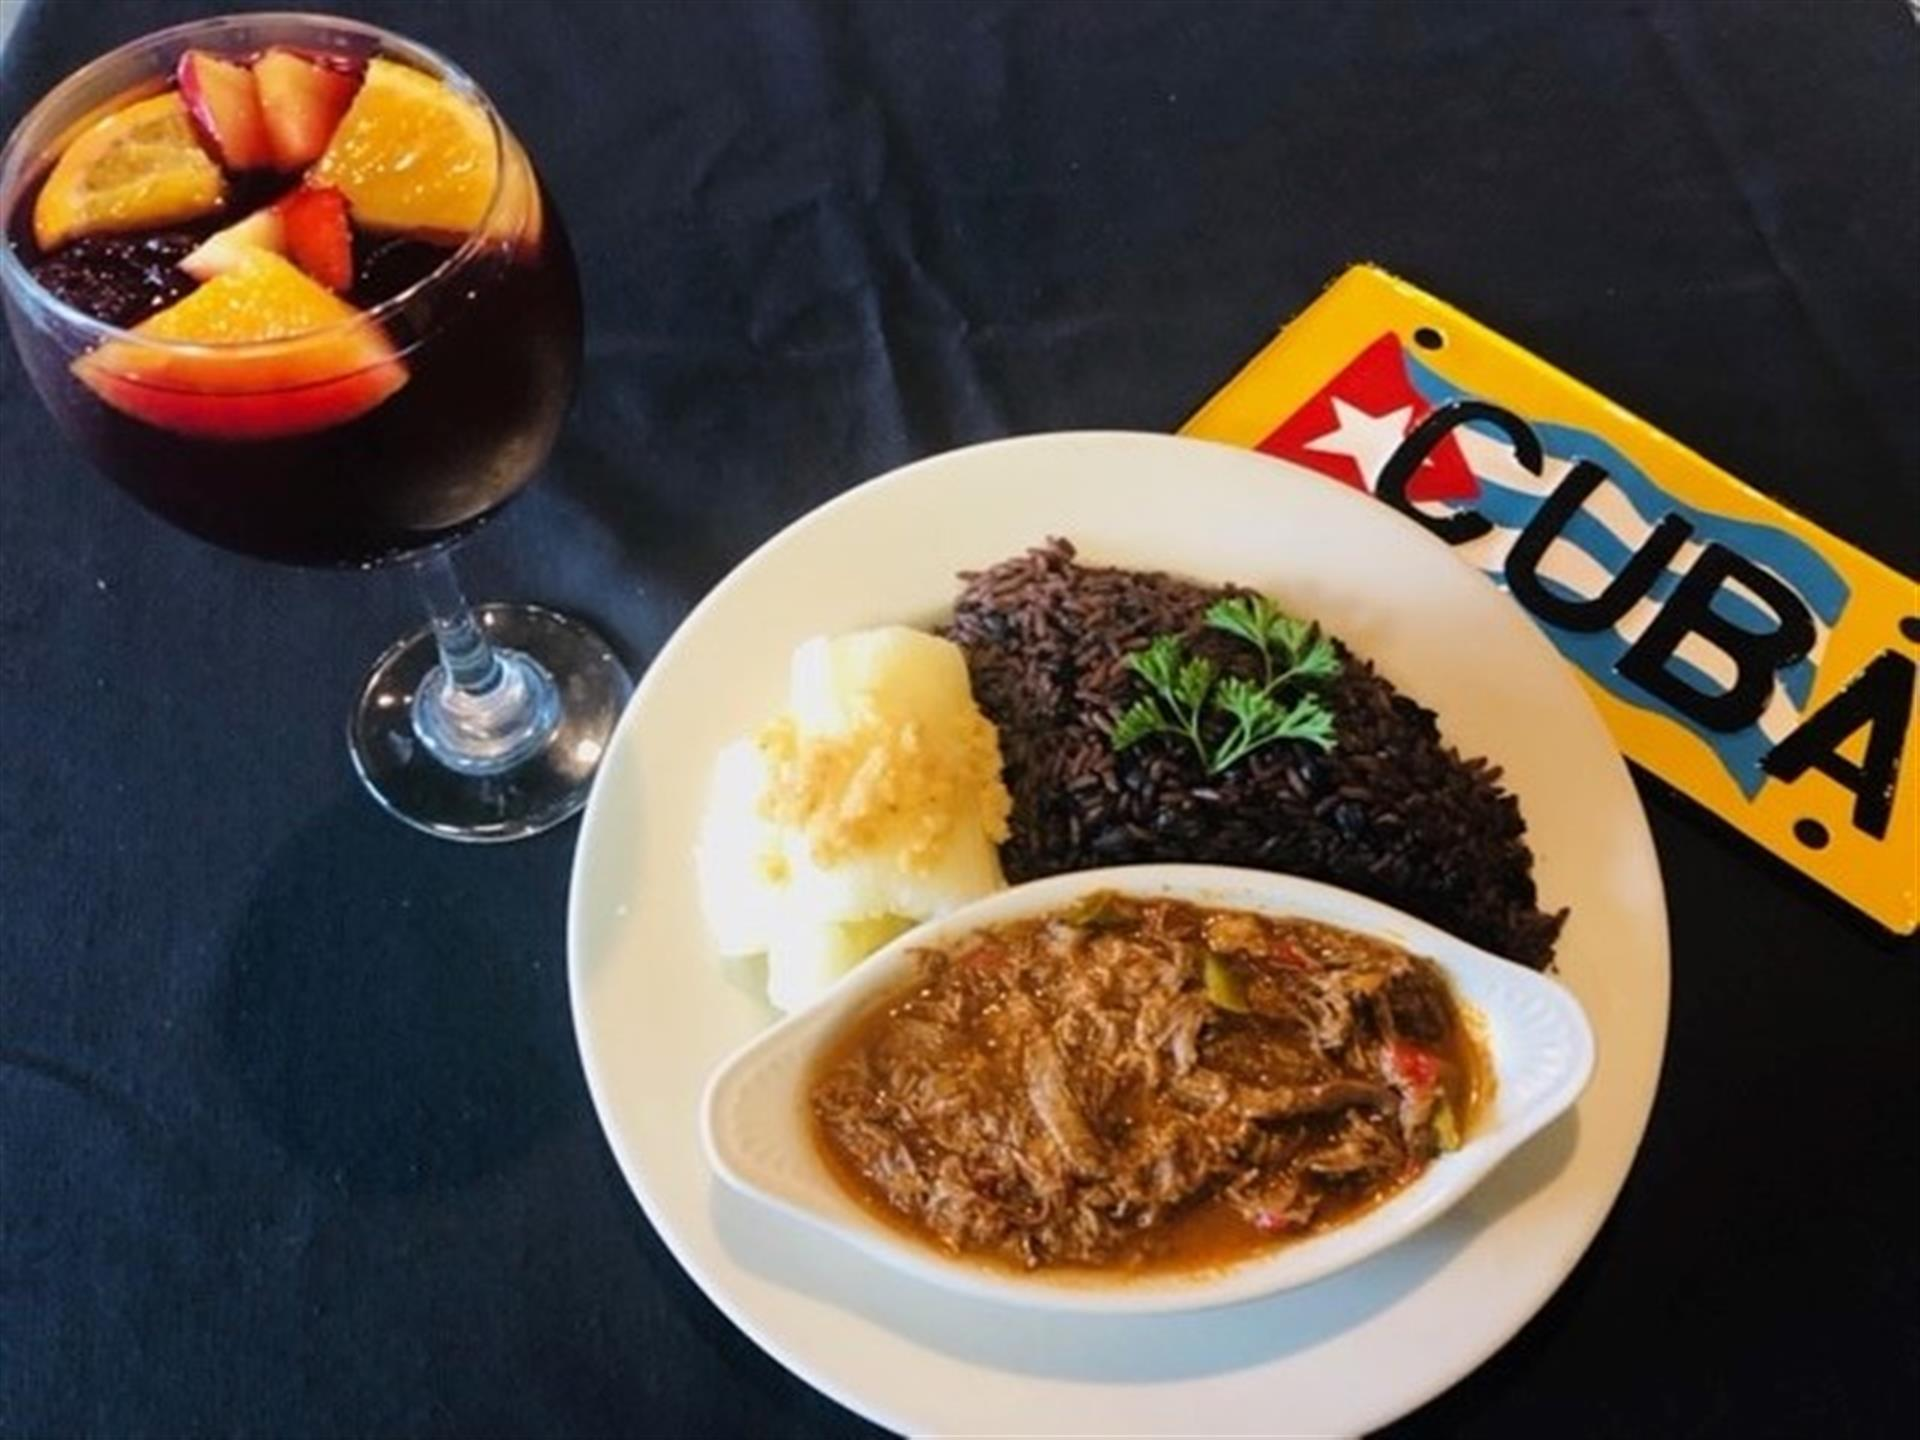 Ropa Vieja Shredded beef slow-cooked in tomato and wine sauce. cuban sign on the table beside the plate.